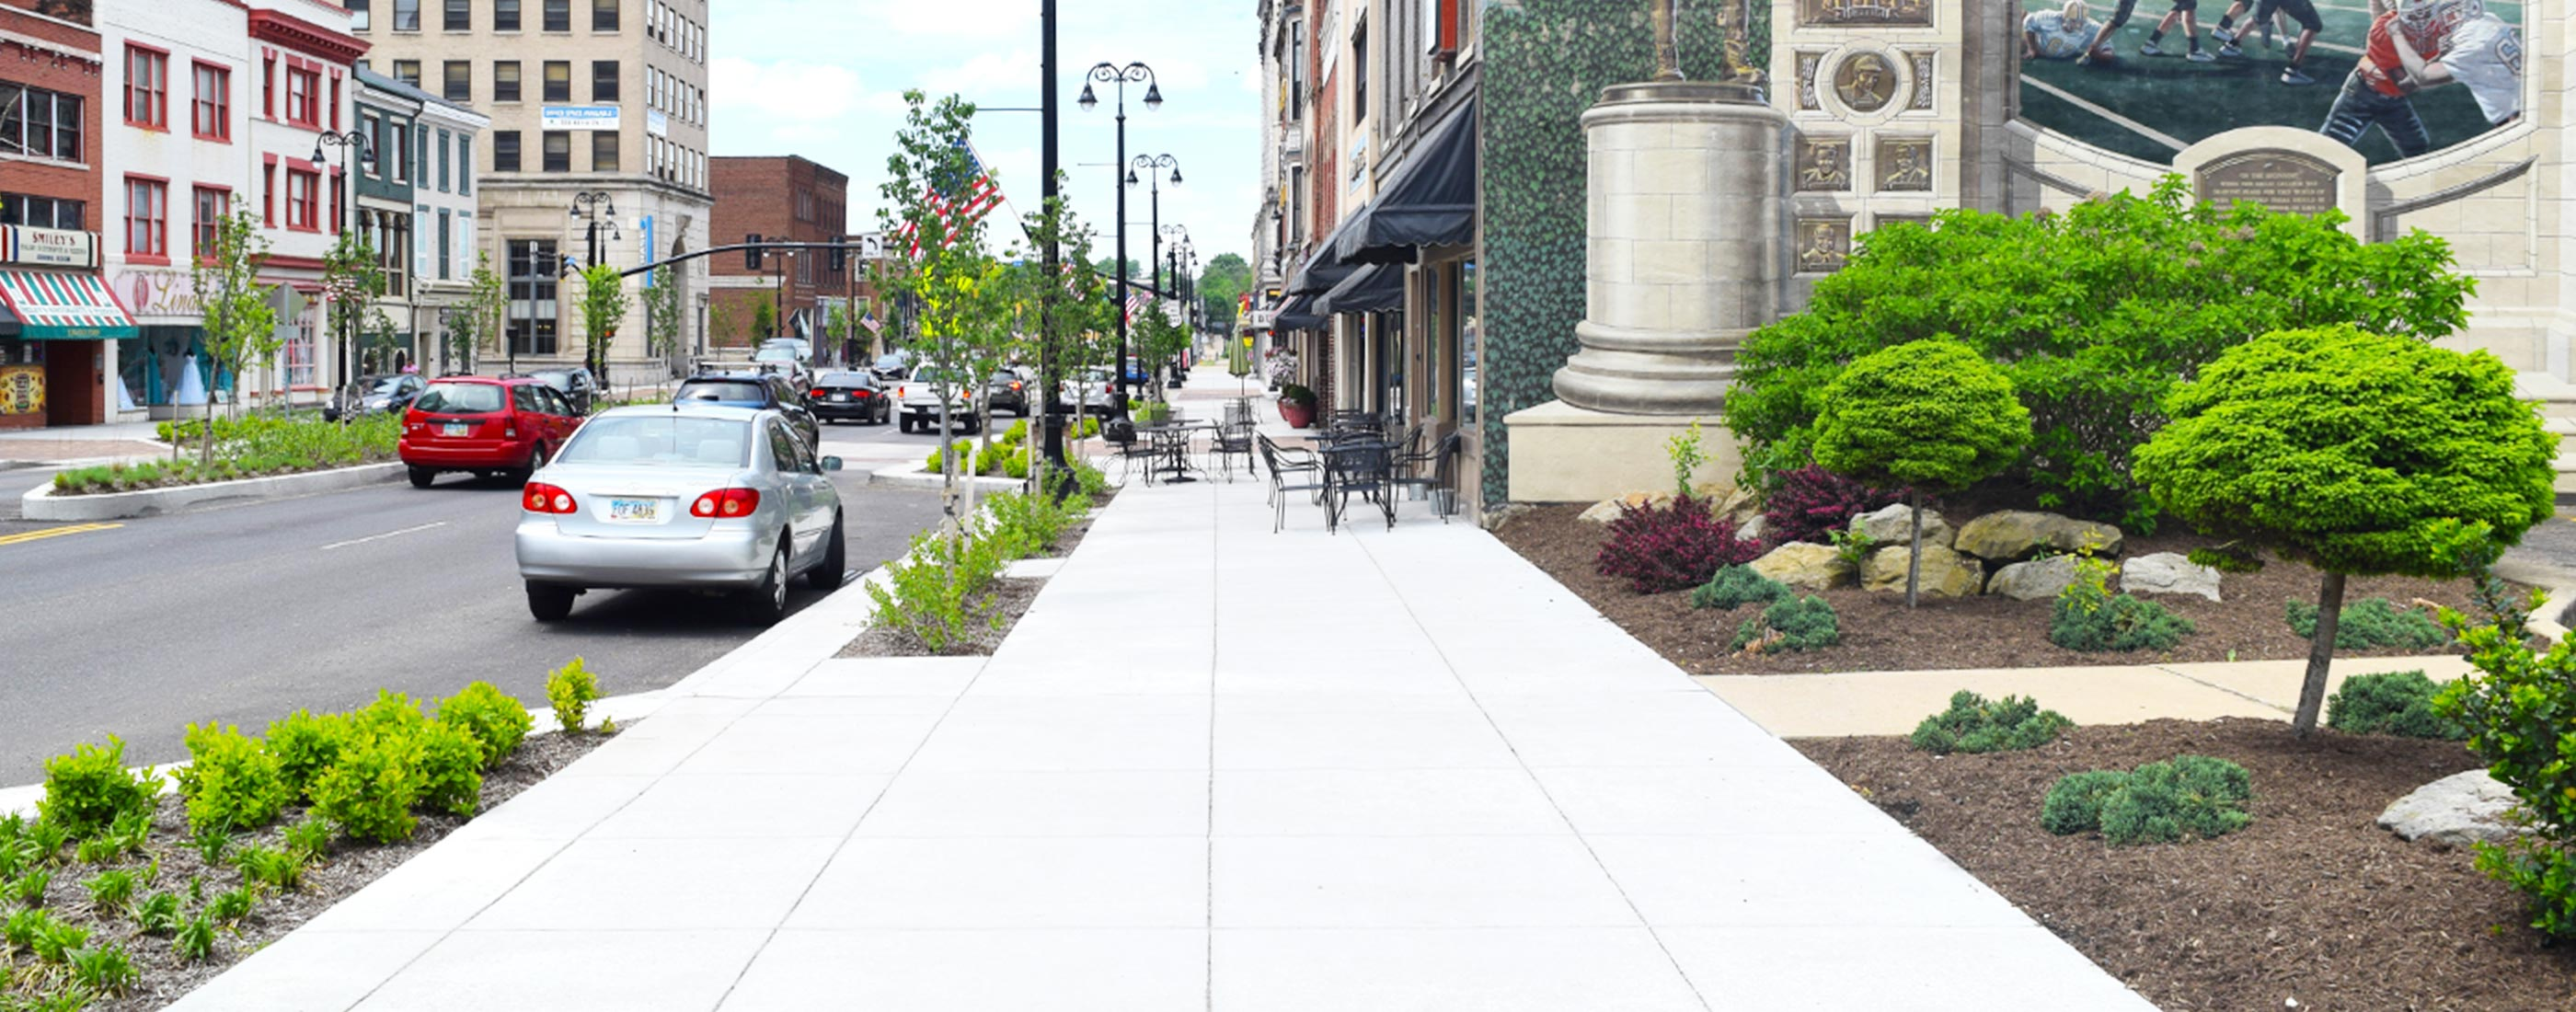 Sidewalk 2 in Massillon streetscape